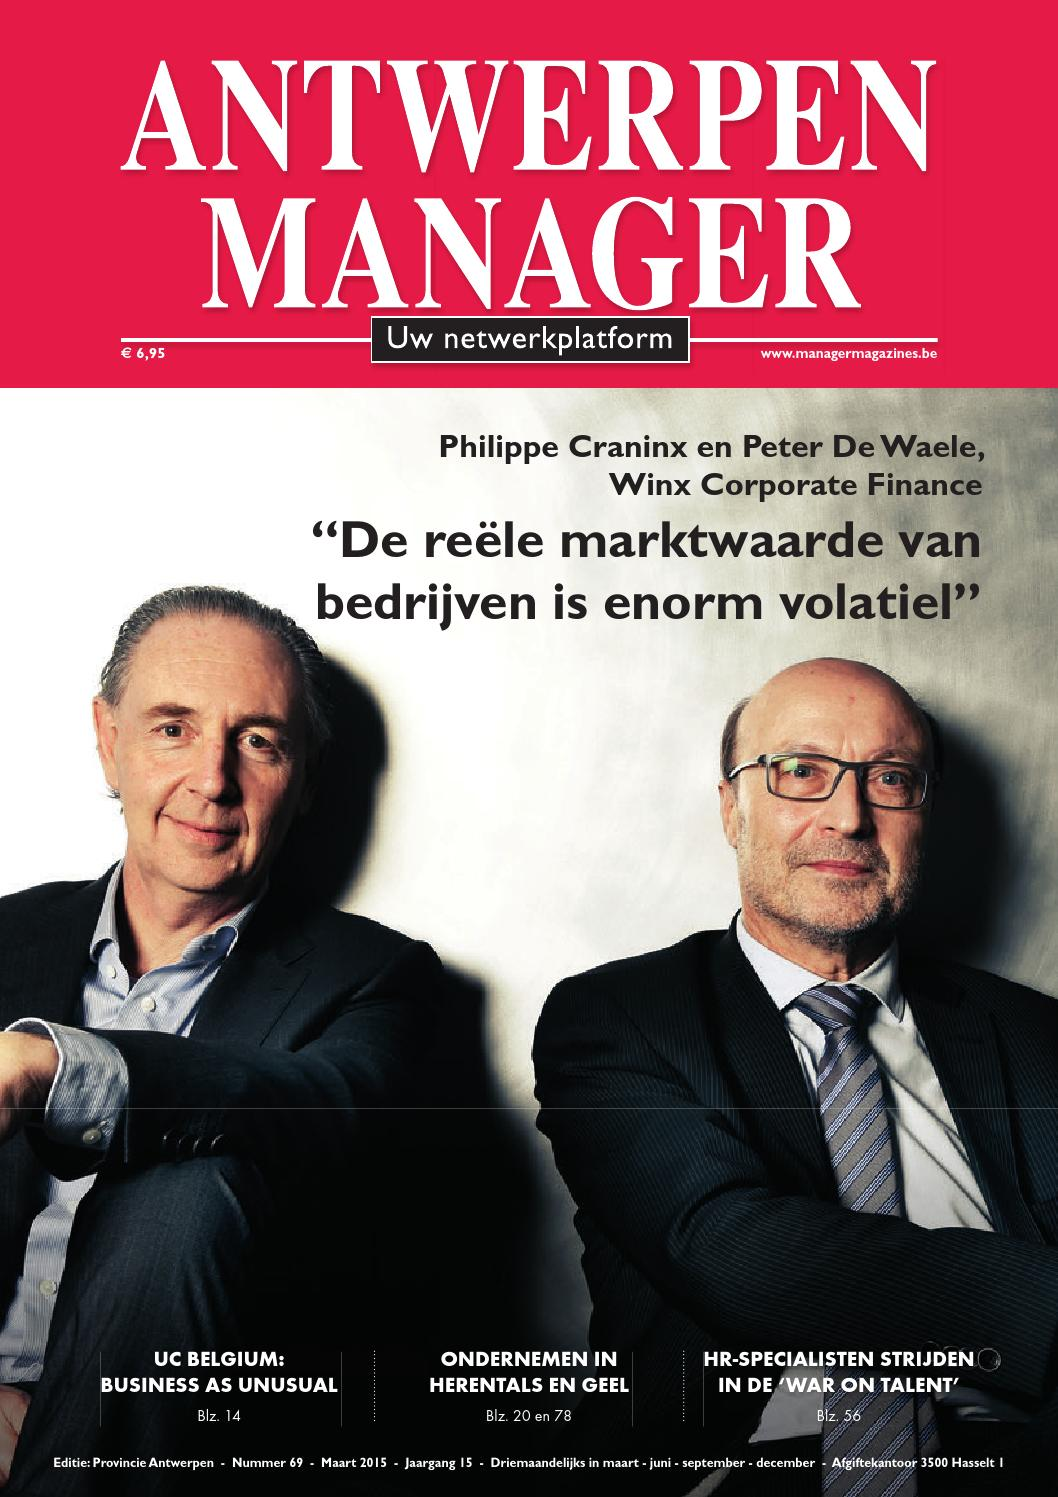 Brabant Manager 39 by Manager Magazines - issuu